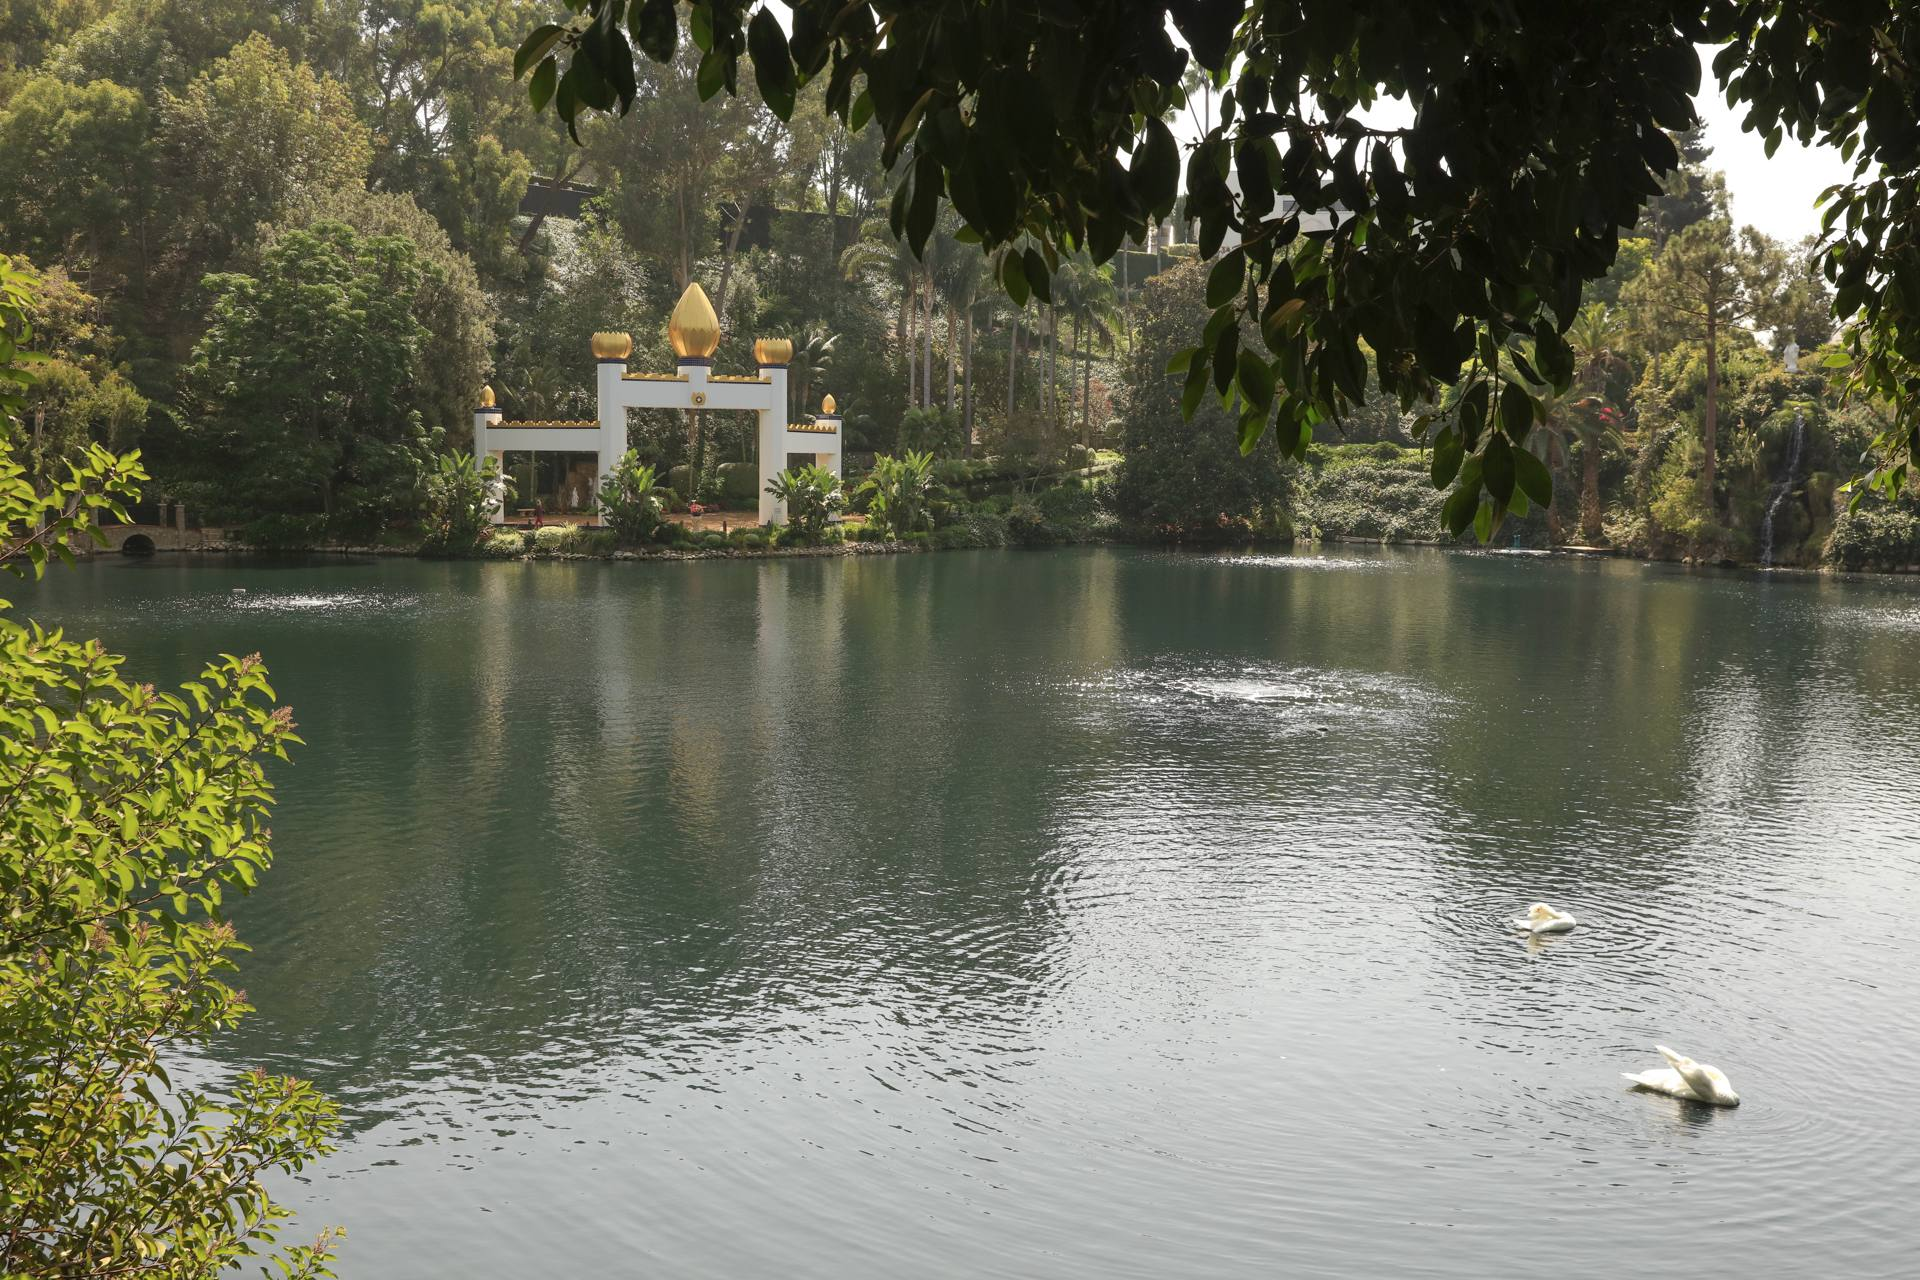 The Self Realization Fellowship Lake Shrine   |  Photo: Yuri Hasegawa